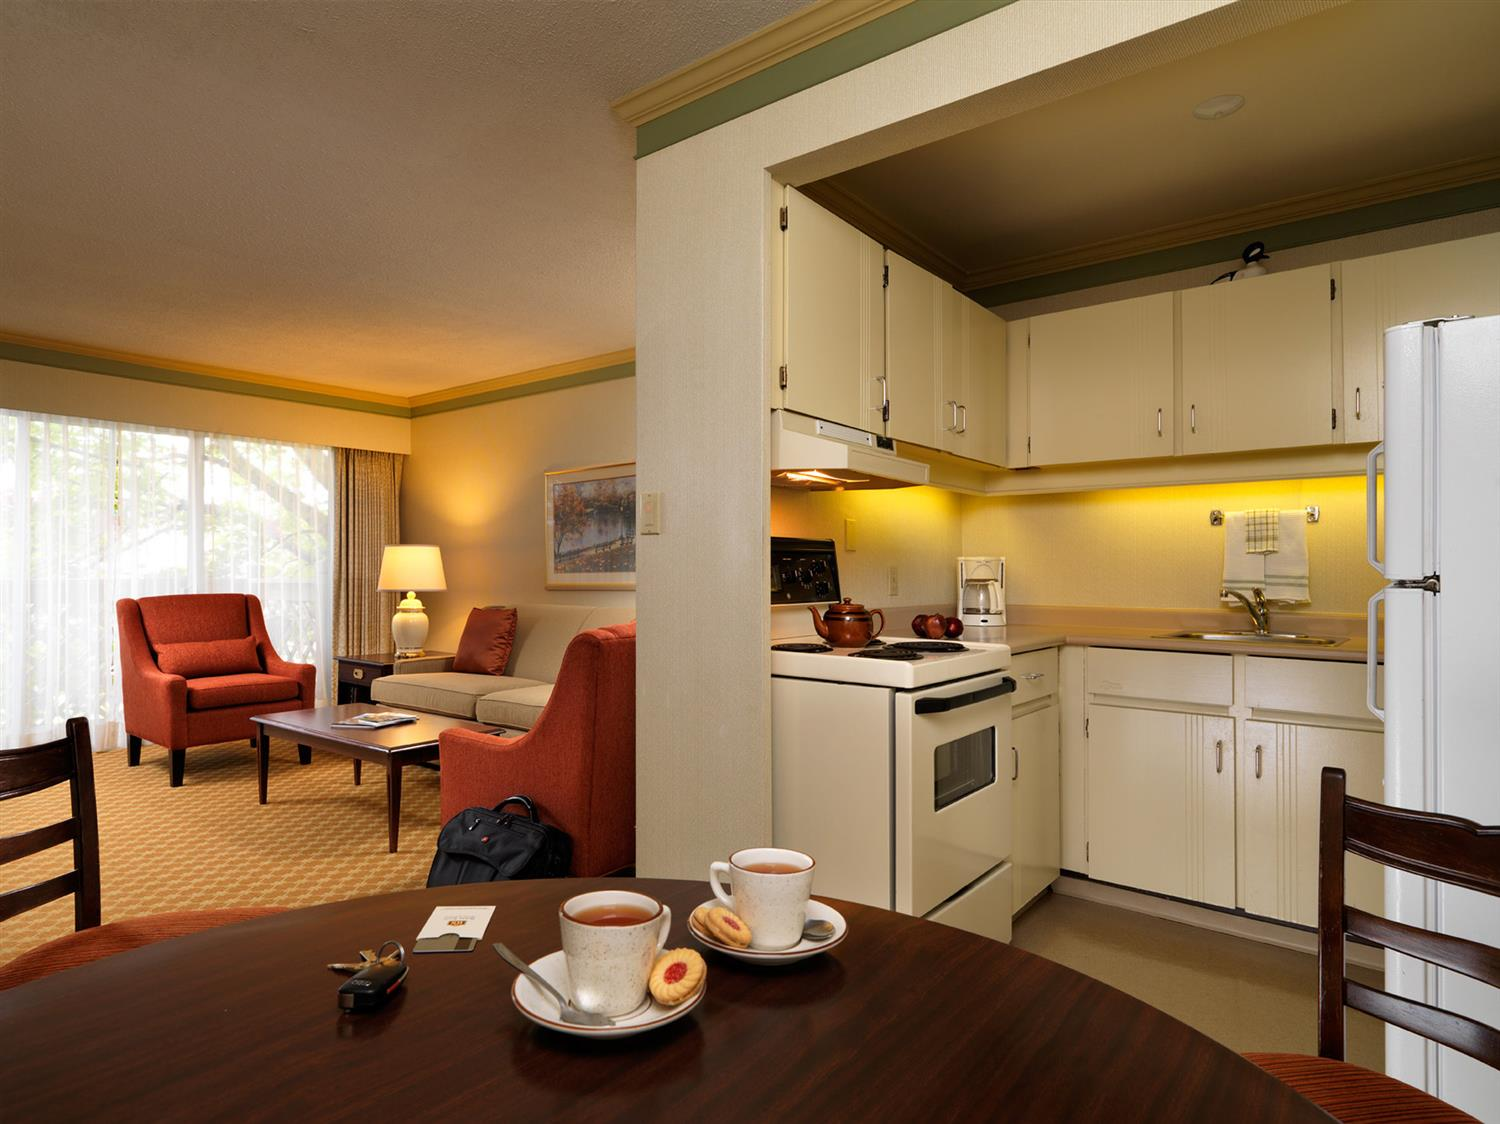 Room - Royal Scot Hotel & Suites Victoria